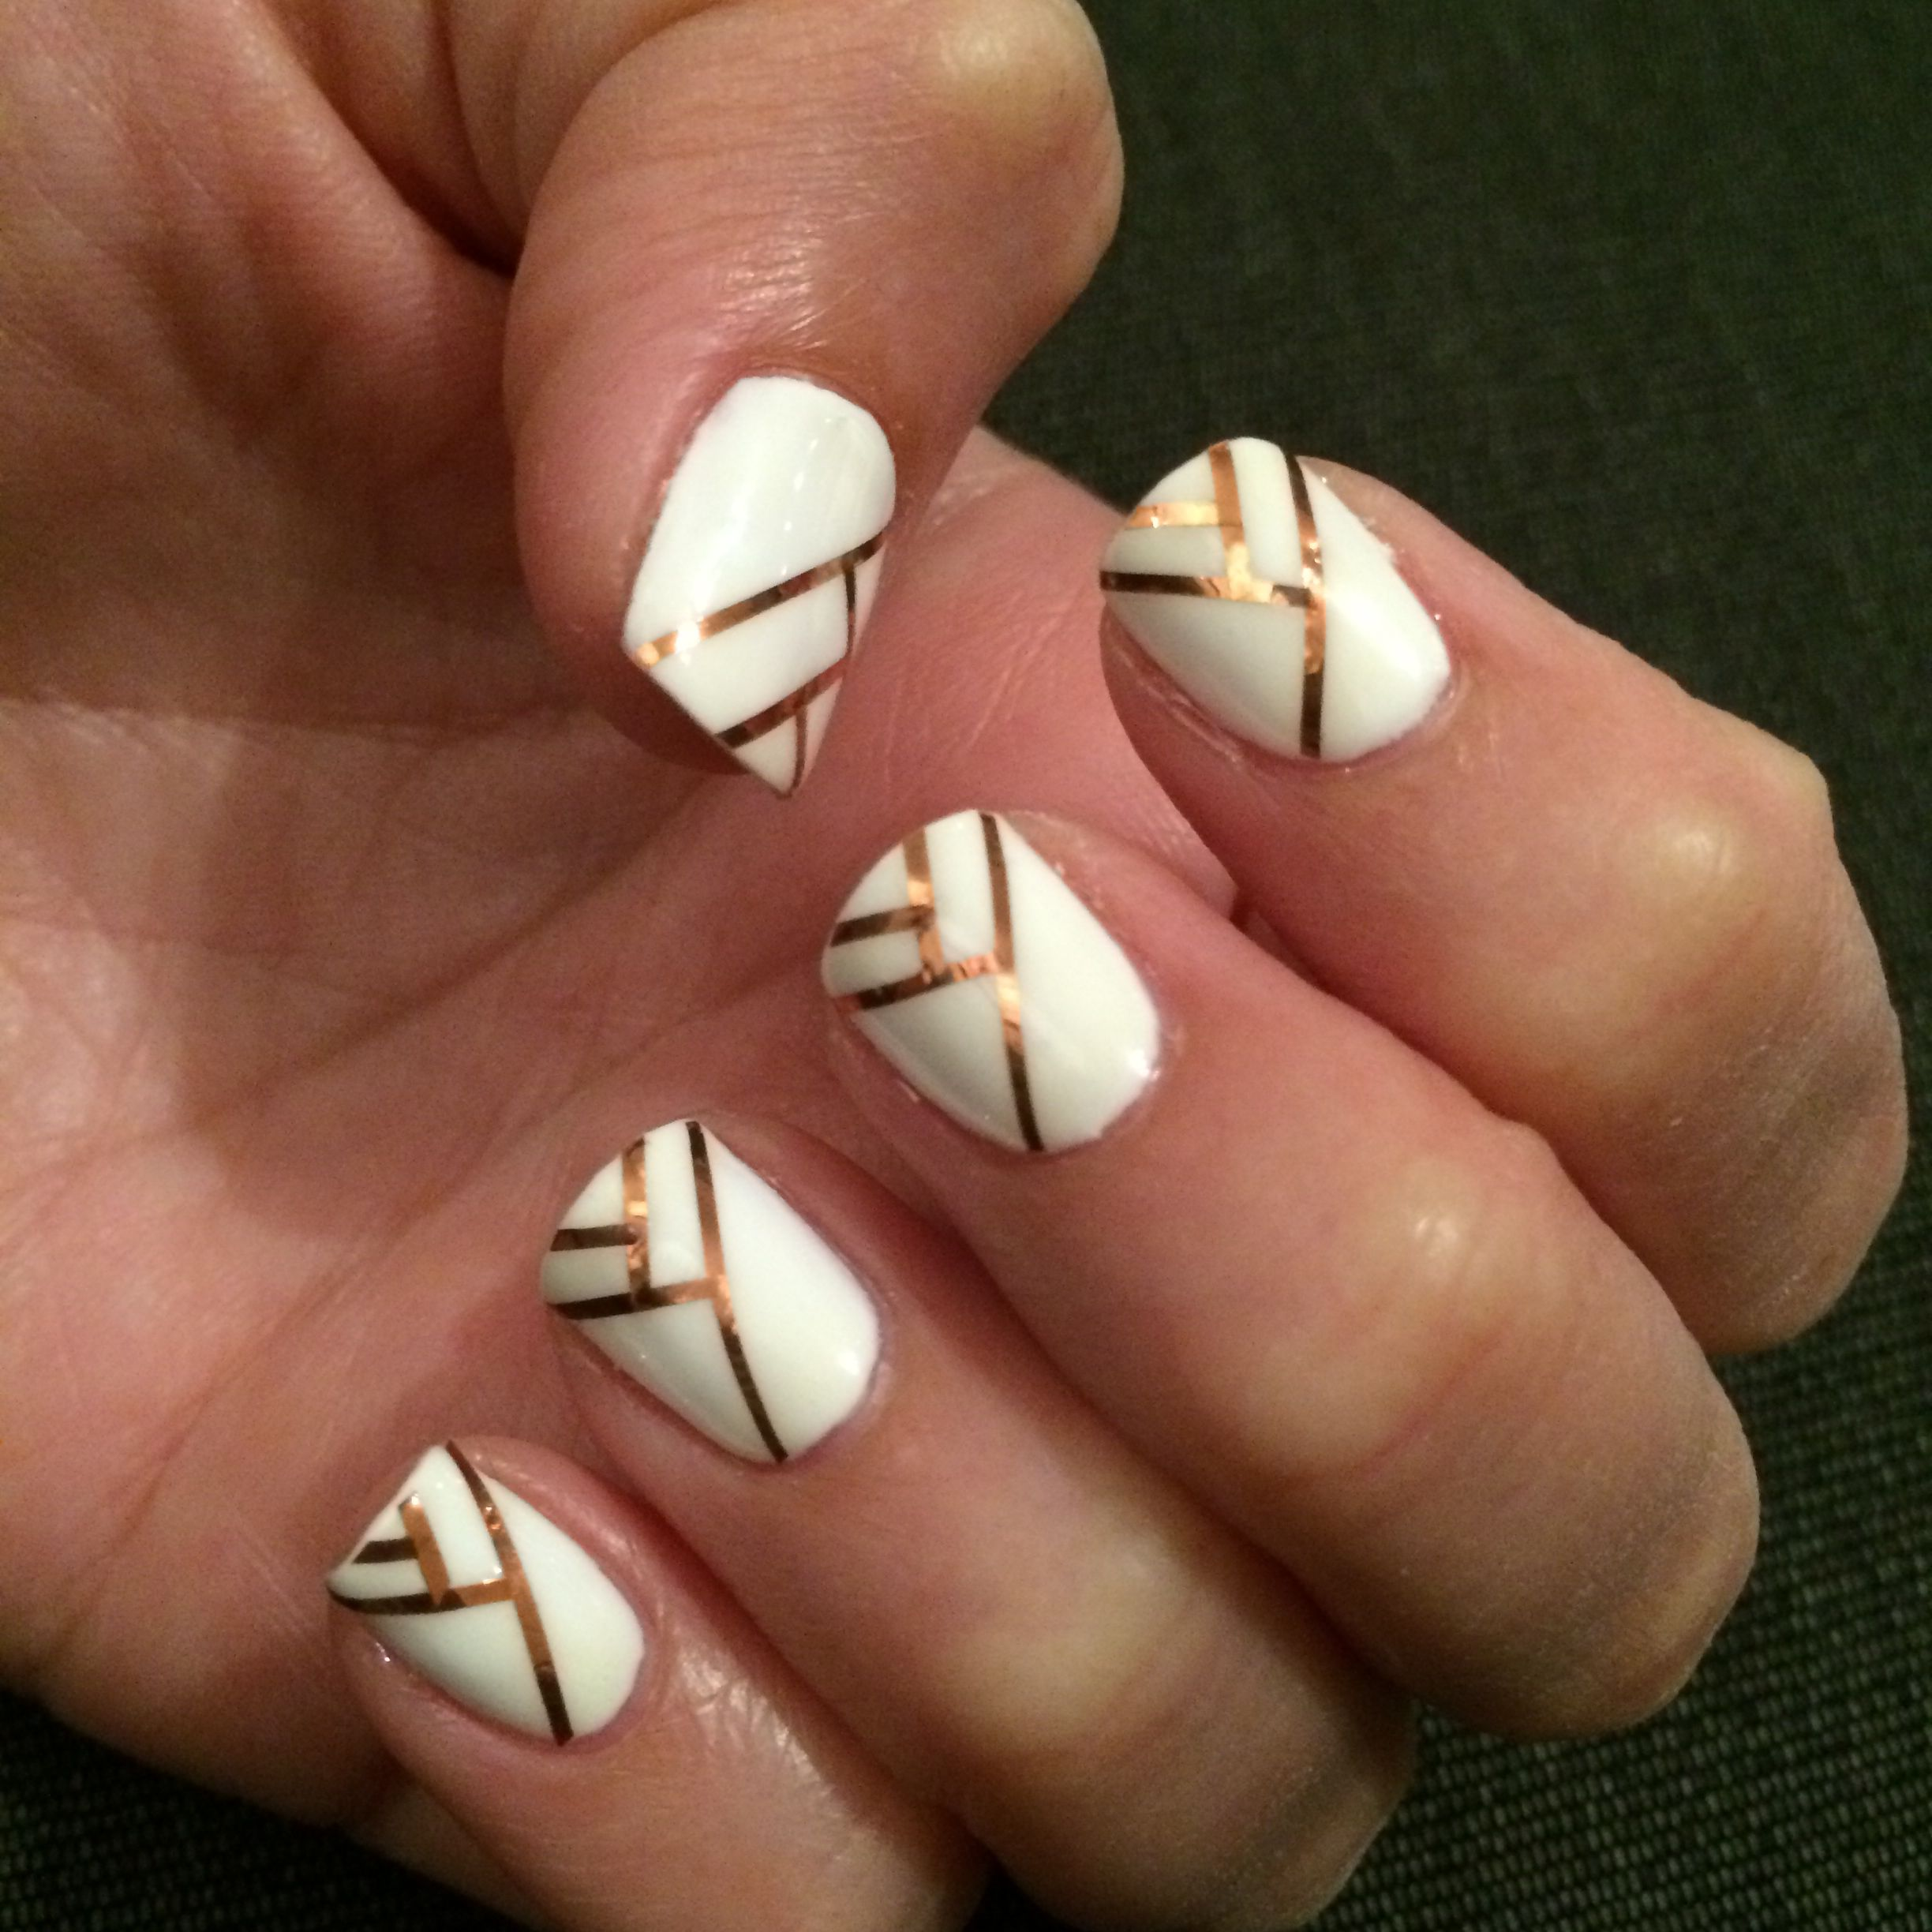 Striping tape nail design | Nails | Pinterest | Tape nail designs ...